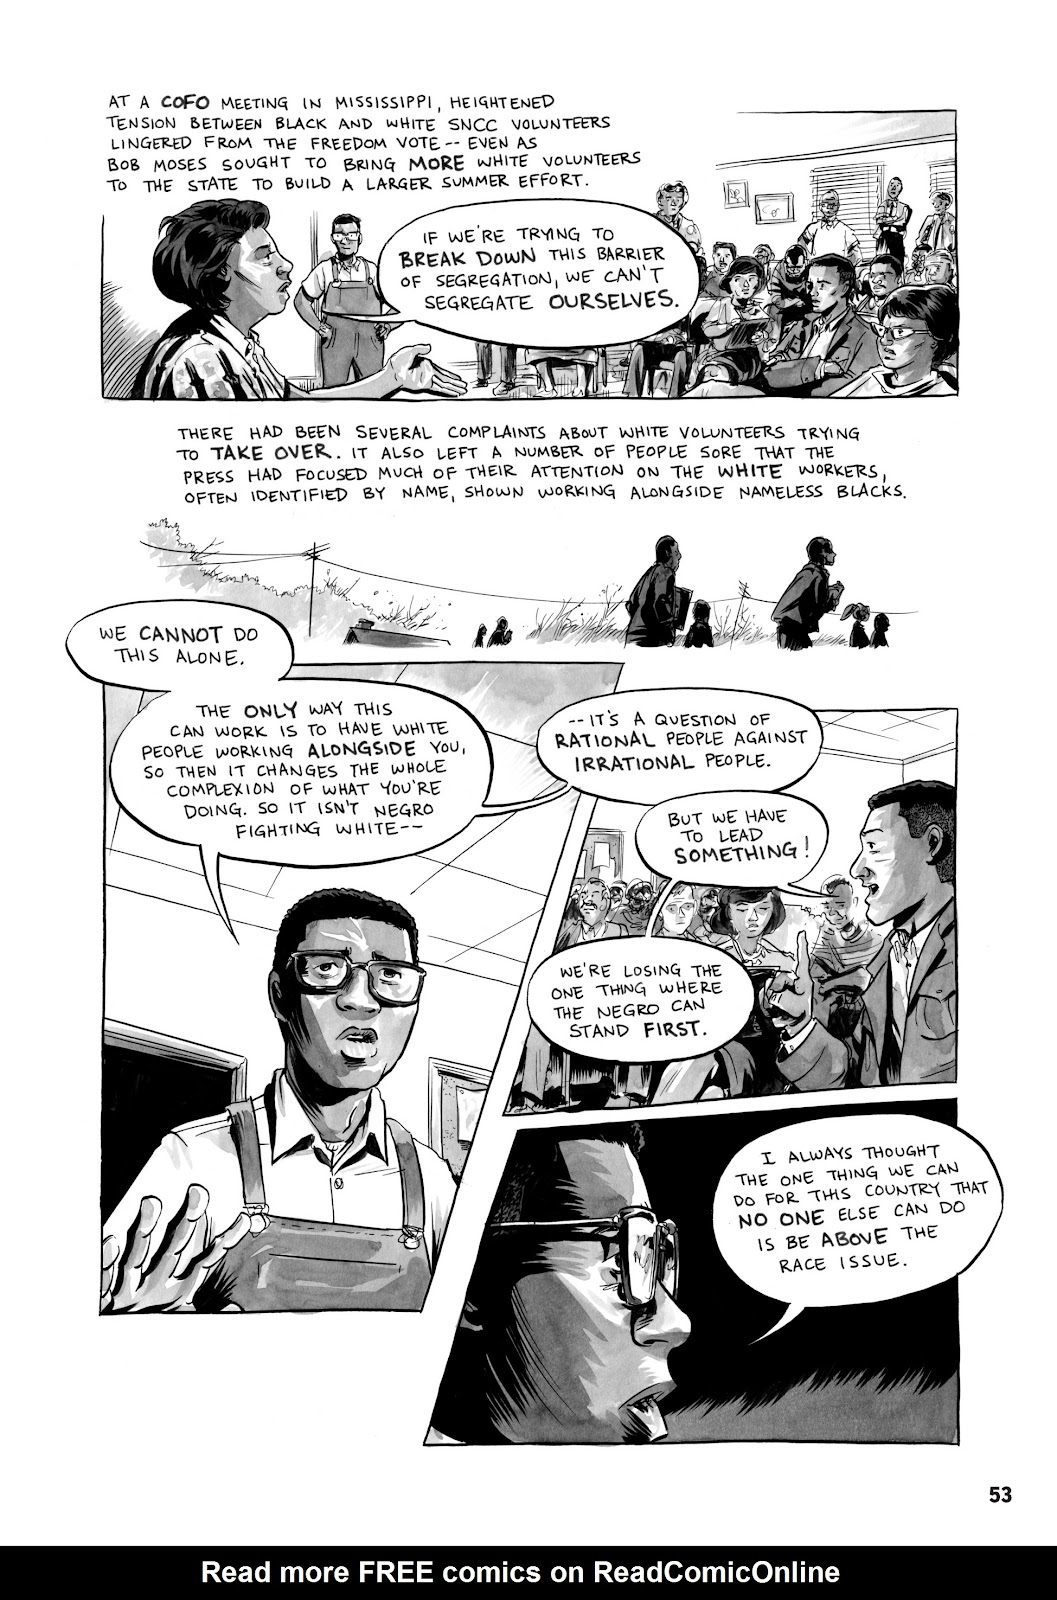 March 3 Page 50